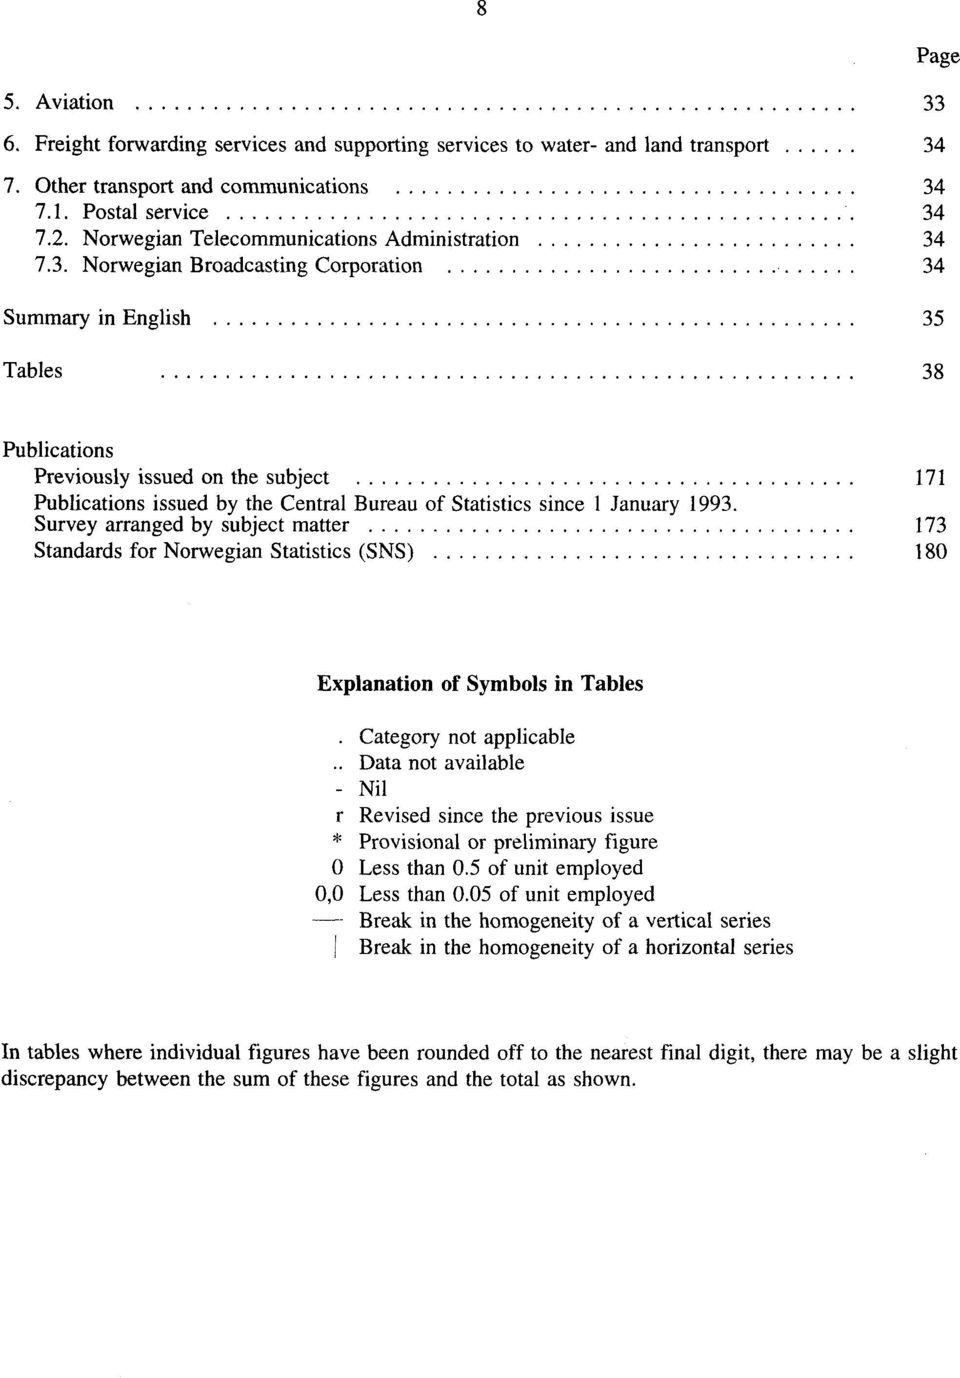 7.3. Norwegian Broadcasting Corporation 34 Summary in English 35 Tables 38 Page Publications Previously issued on the subject 171 Publications issued by the Central Bureau of Statistics since 1